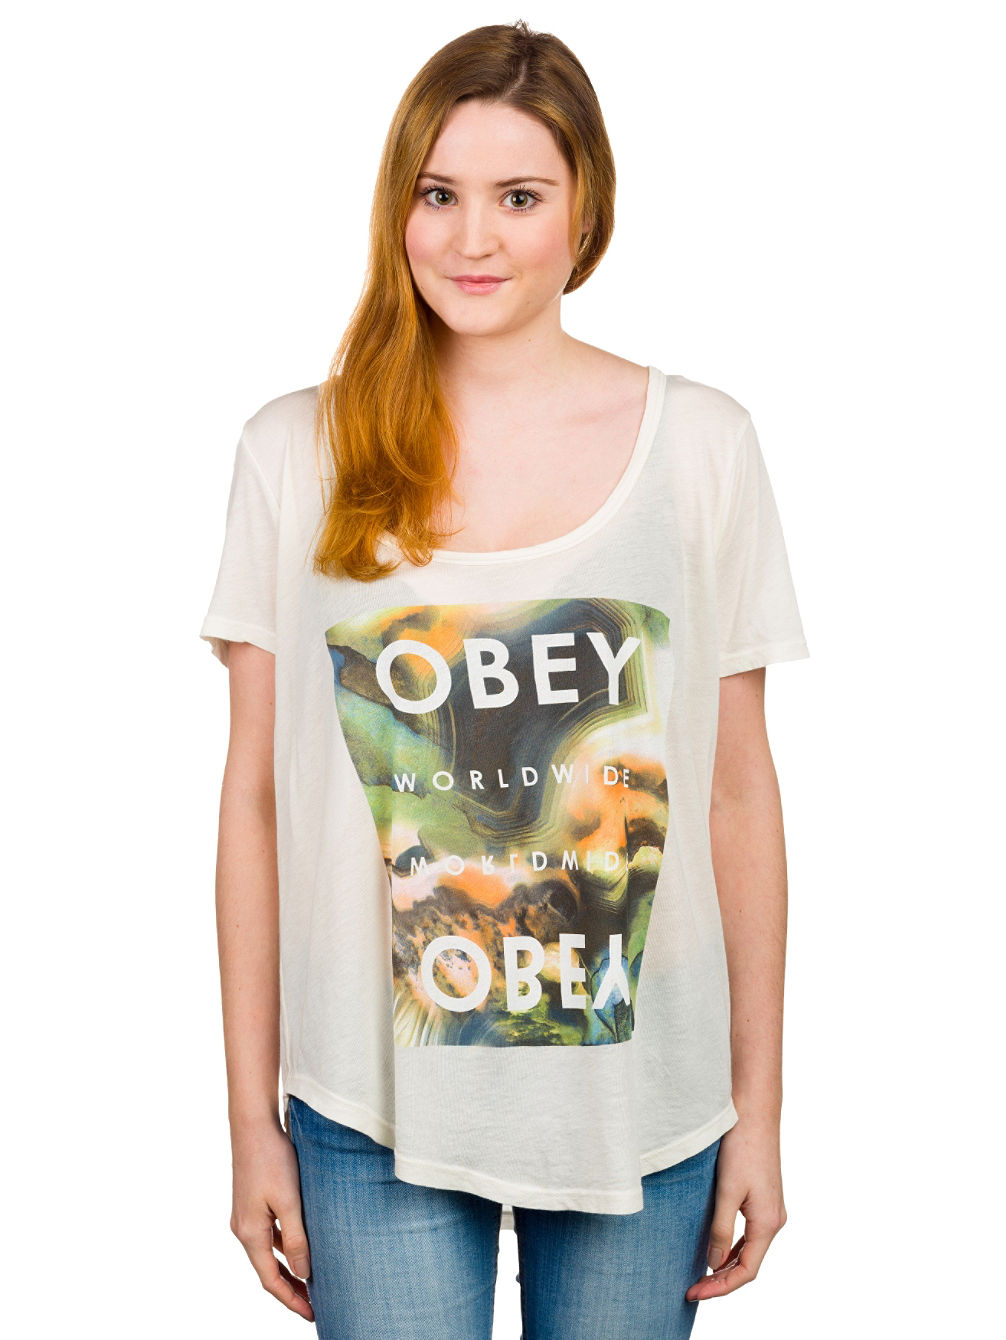 agate-stone-obey-worldwide-t-shirt